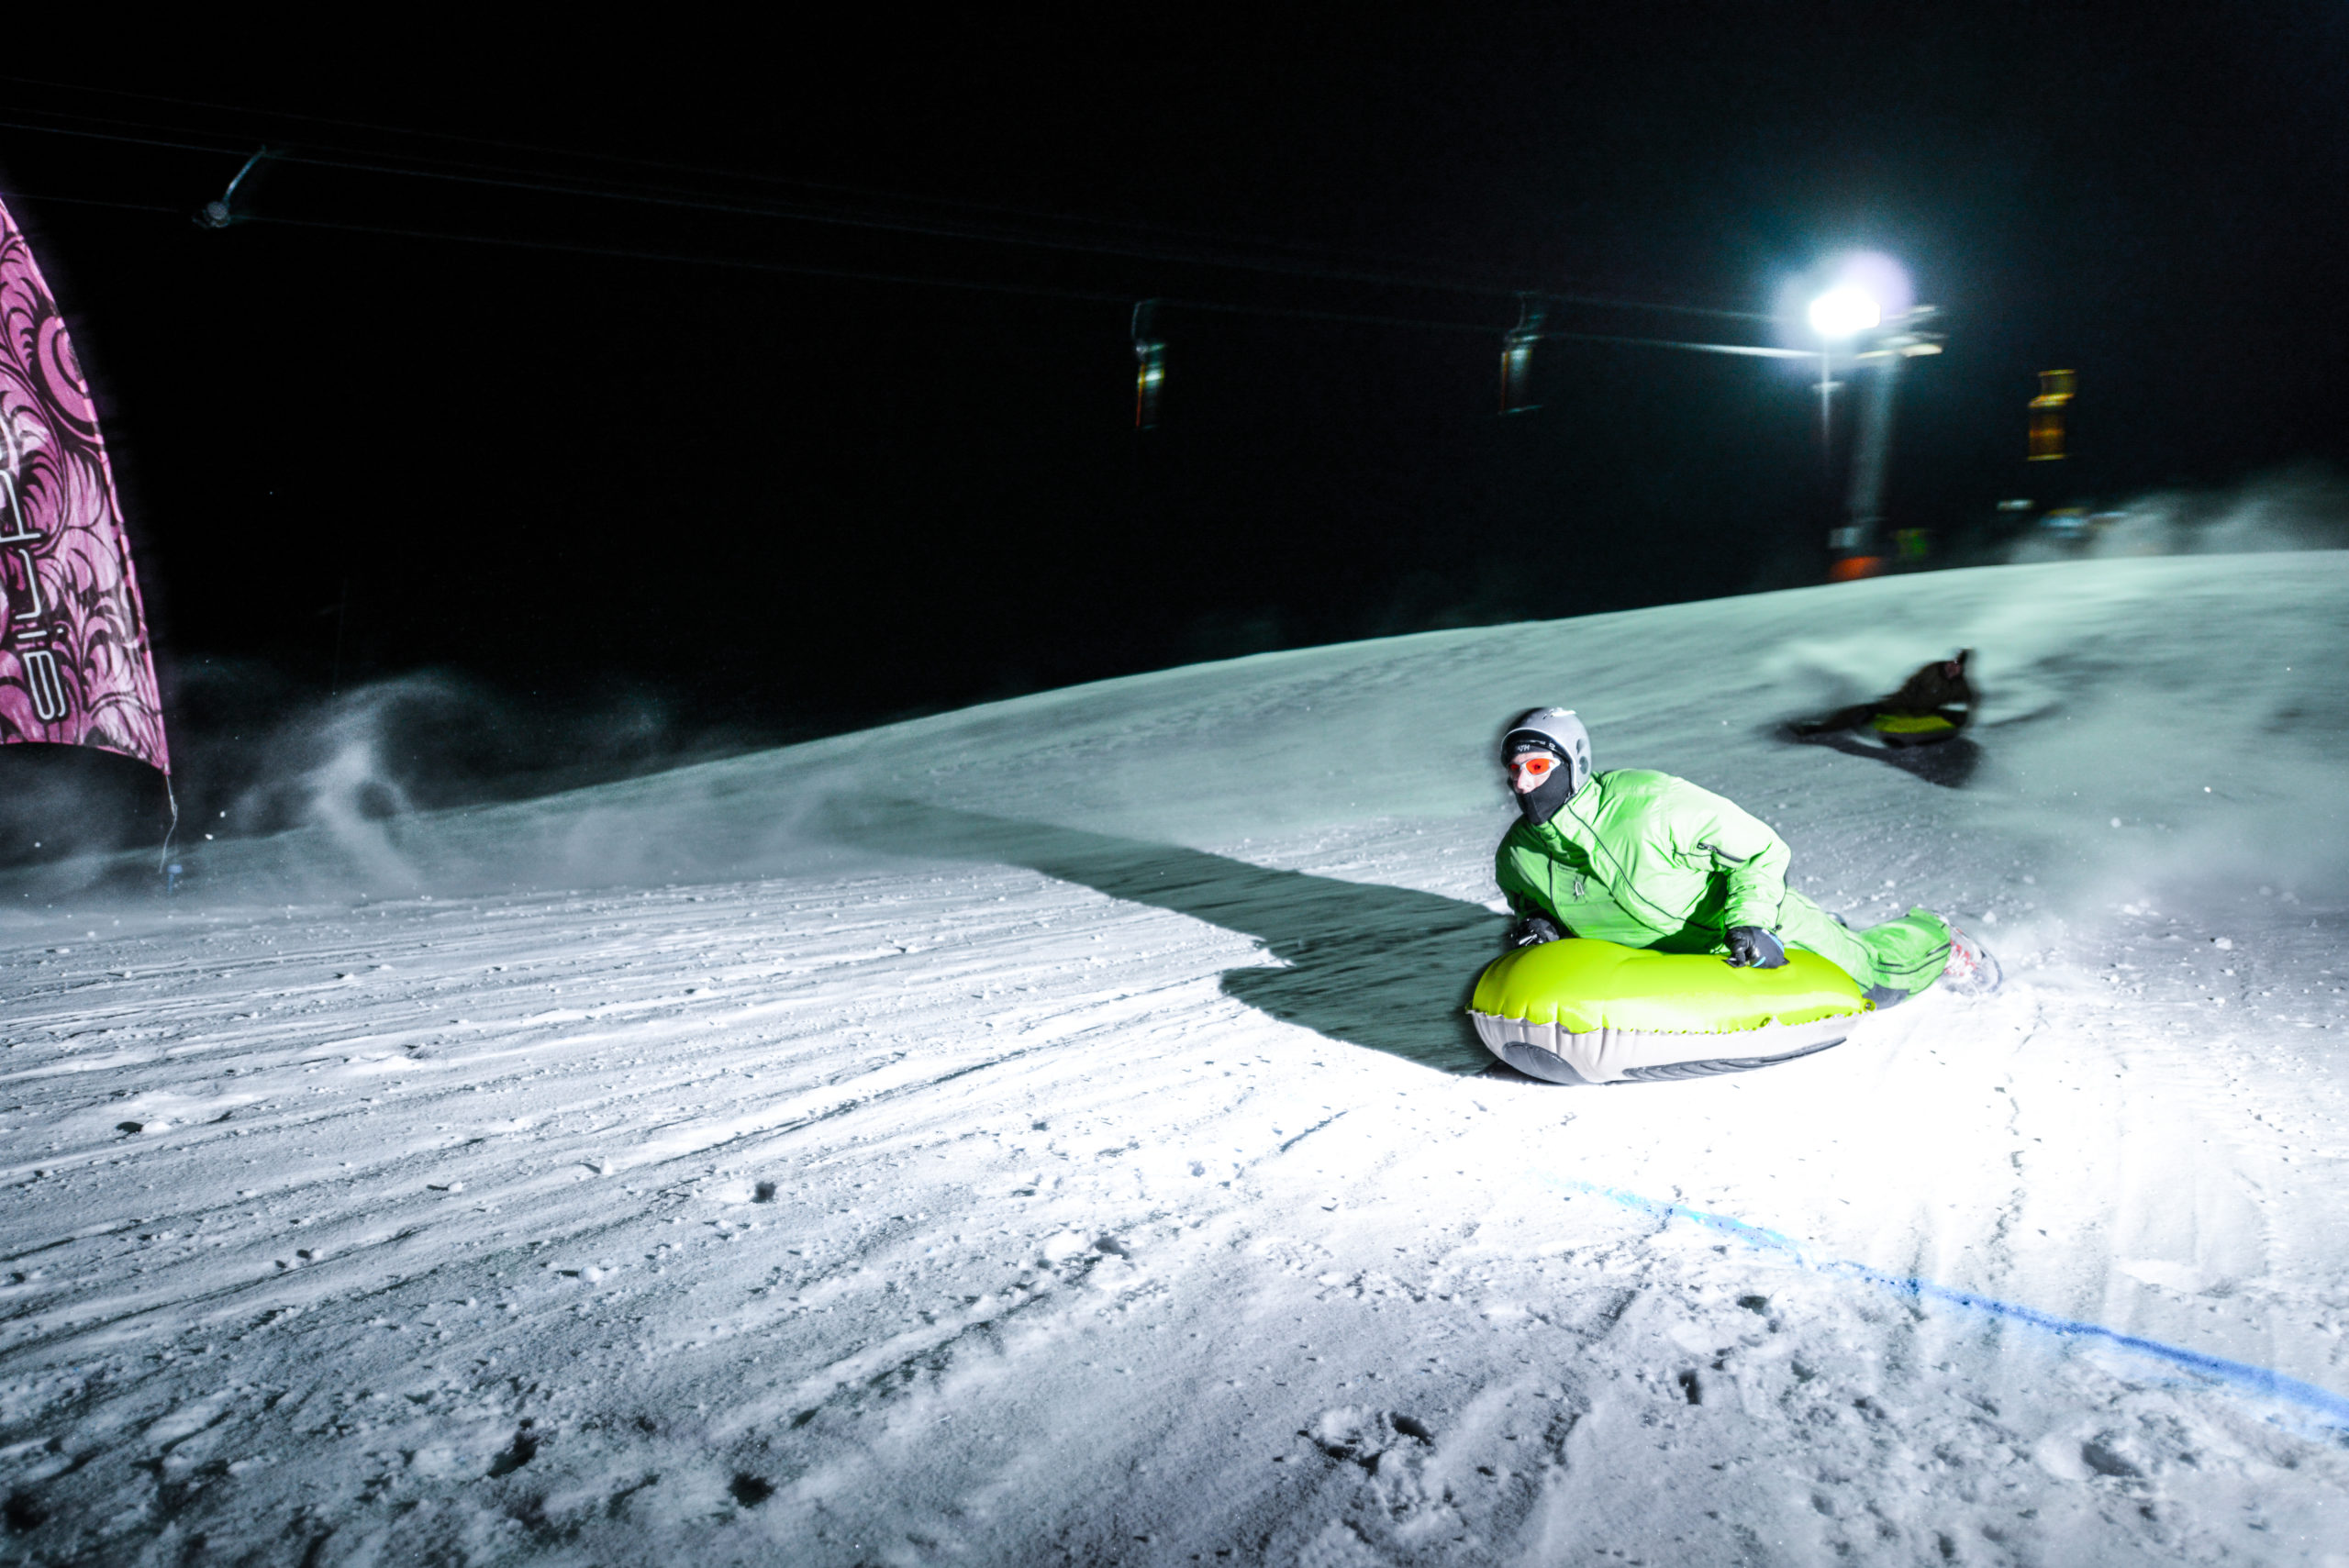 airboard_23-12-2013_2250-3